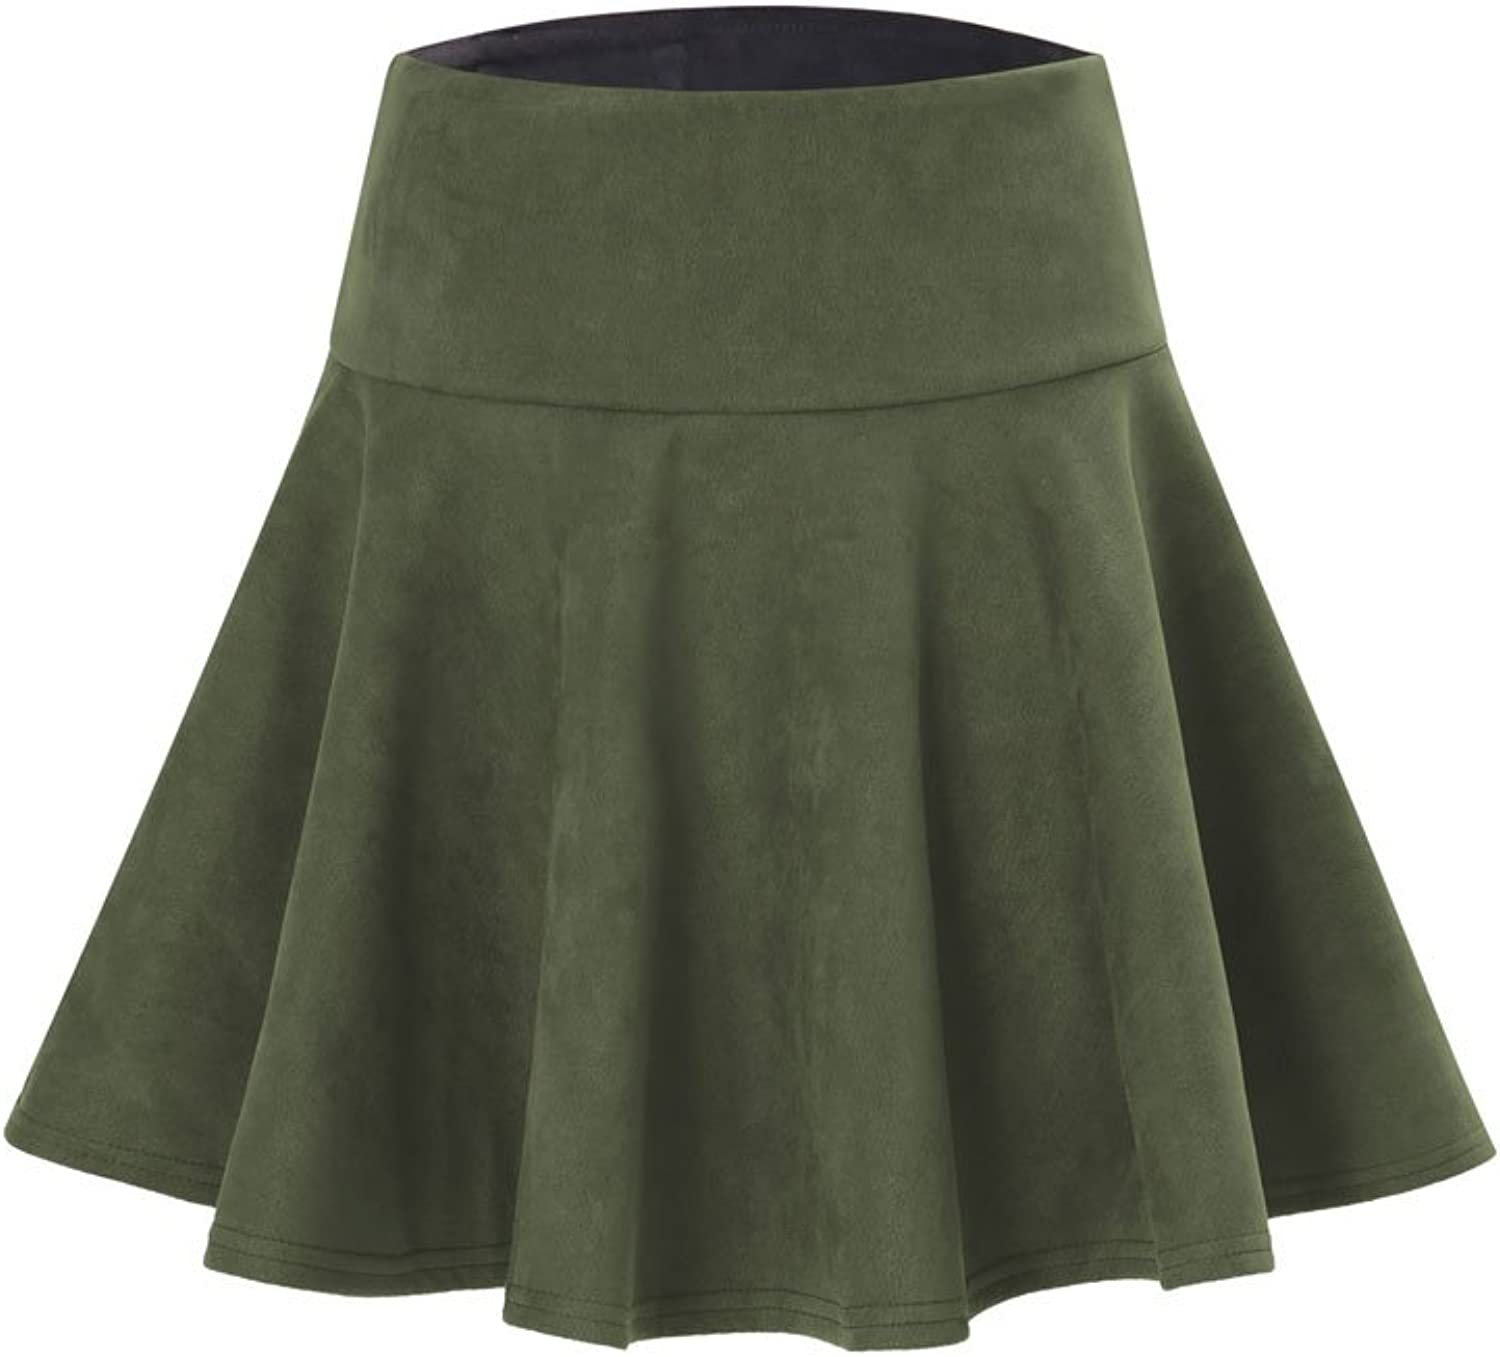 Gamery Women Faux Suede Pleated Short Mini Skirts